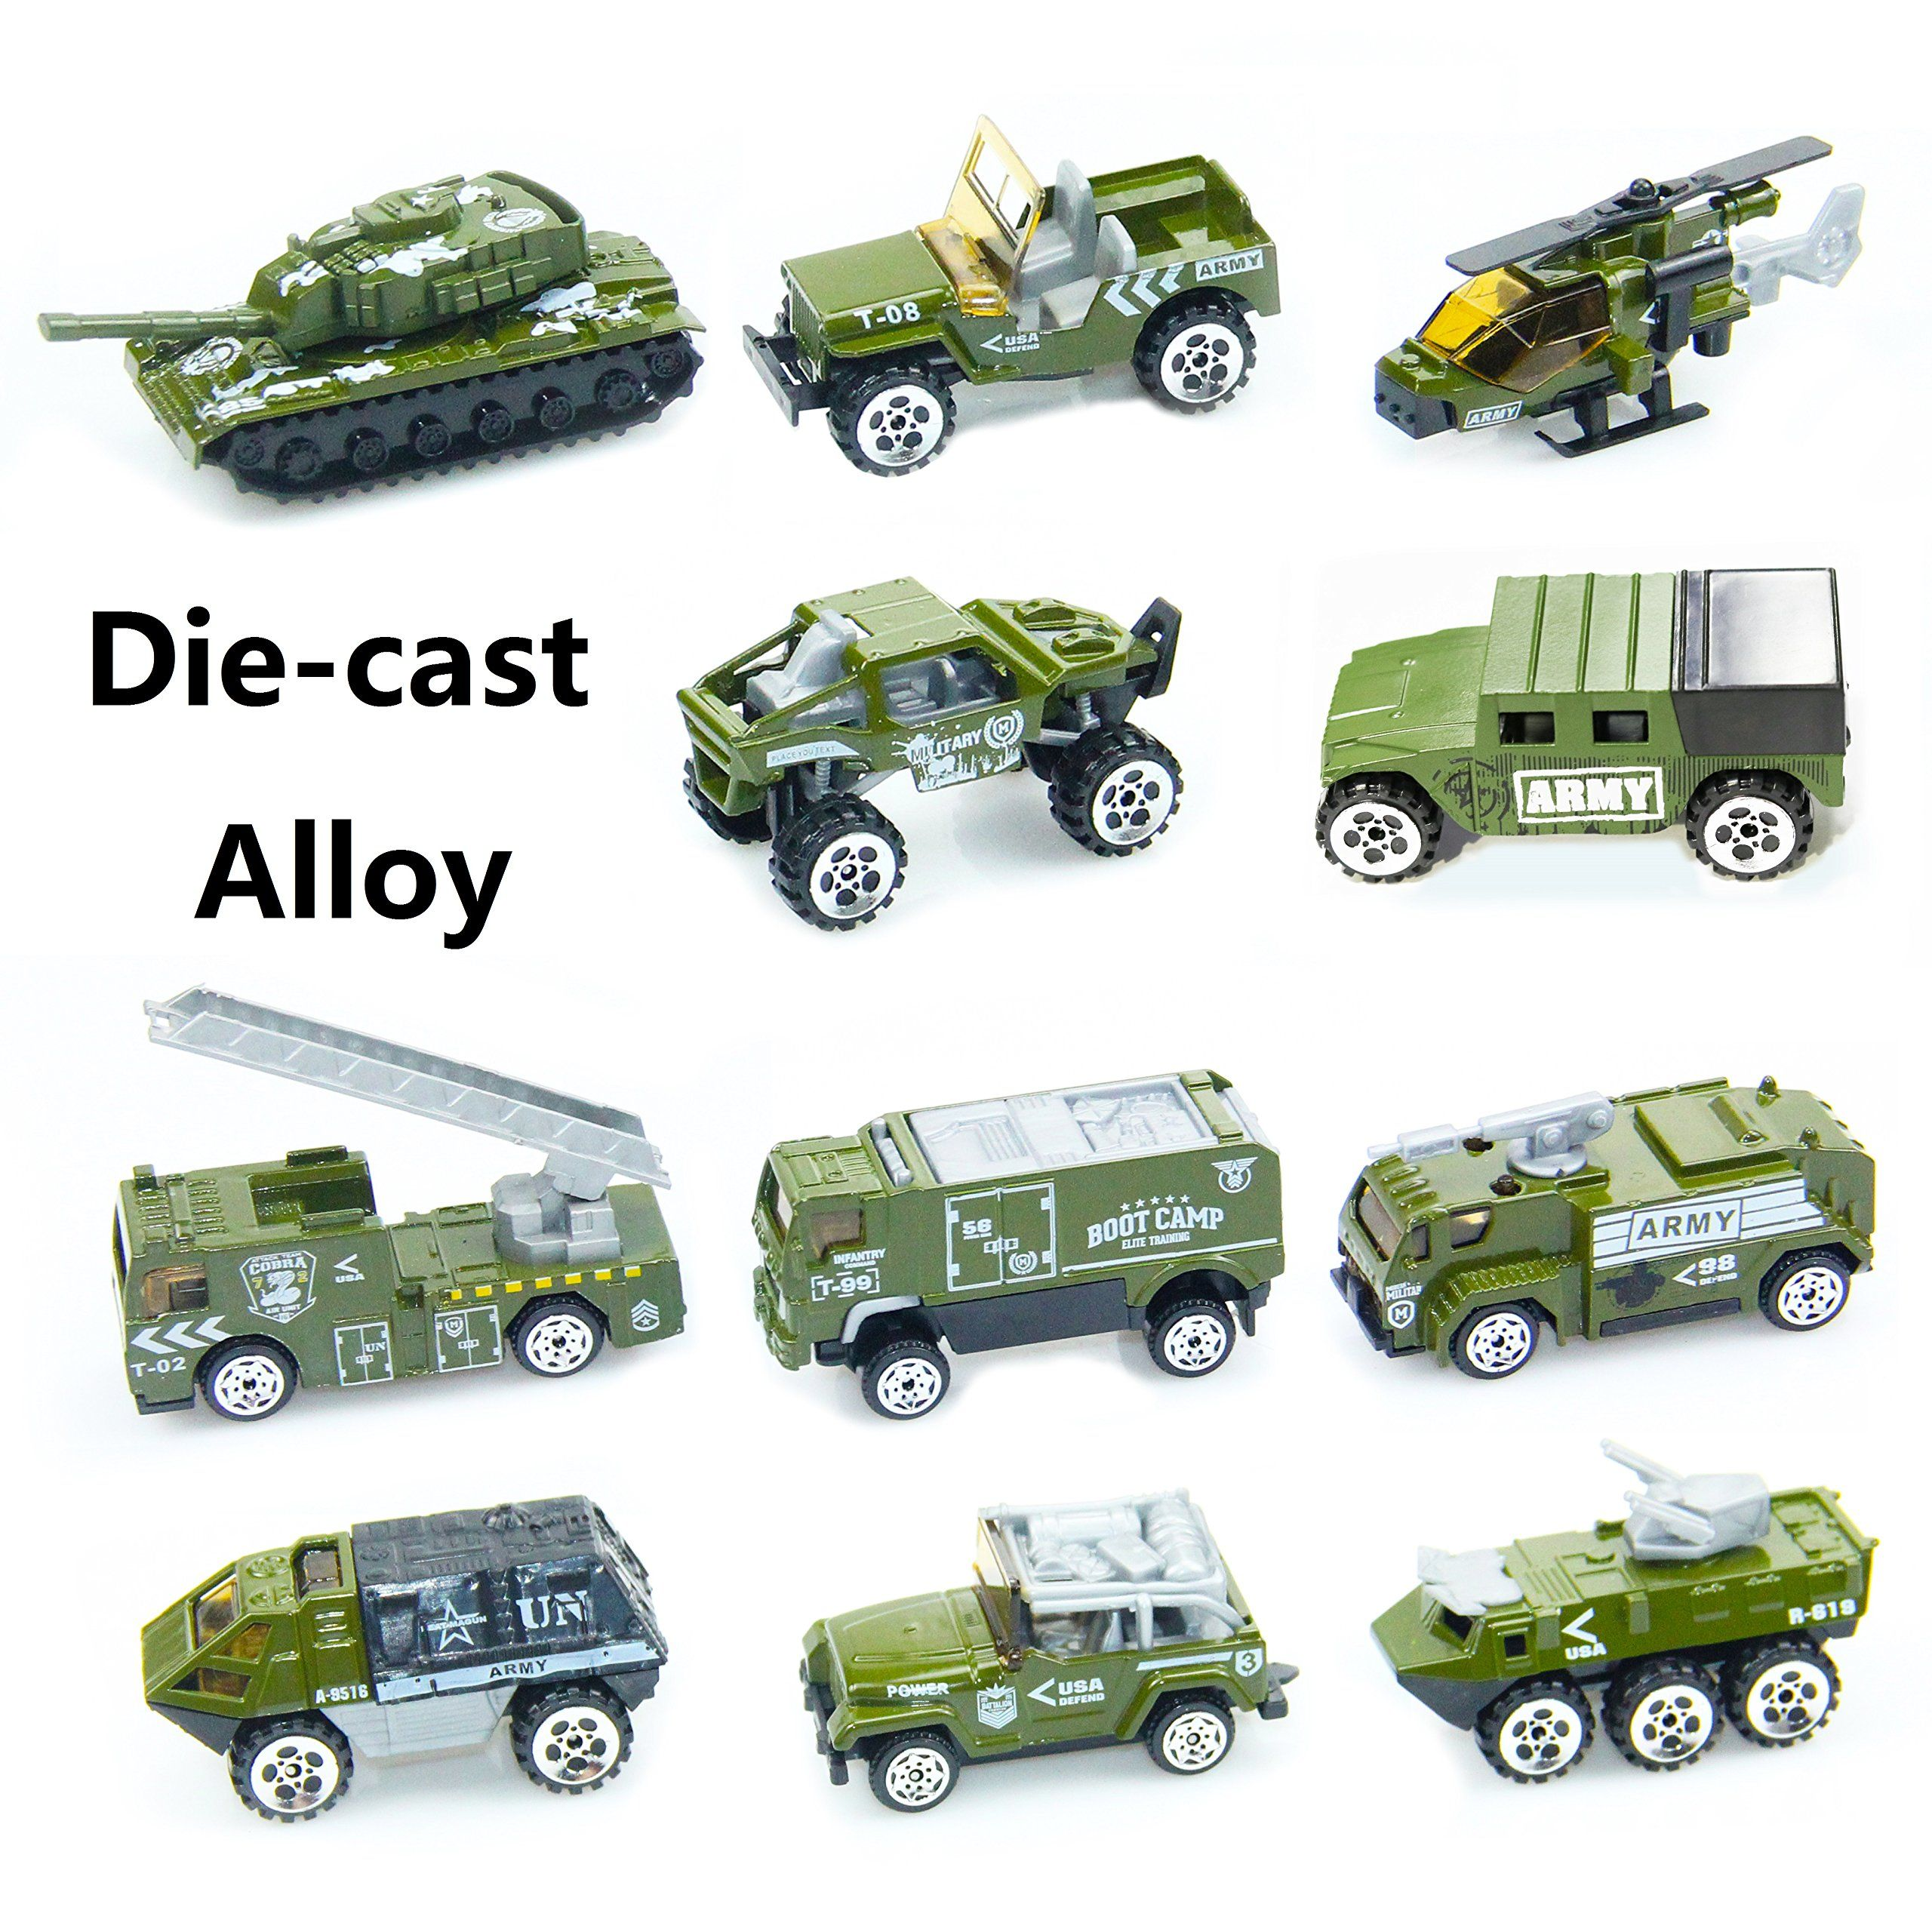 Diecast Military Vehicles Assorted Alloy Military Metal Army